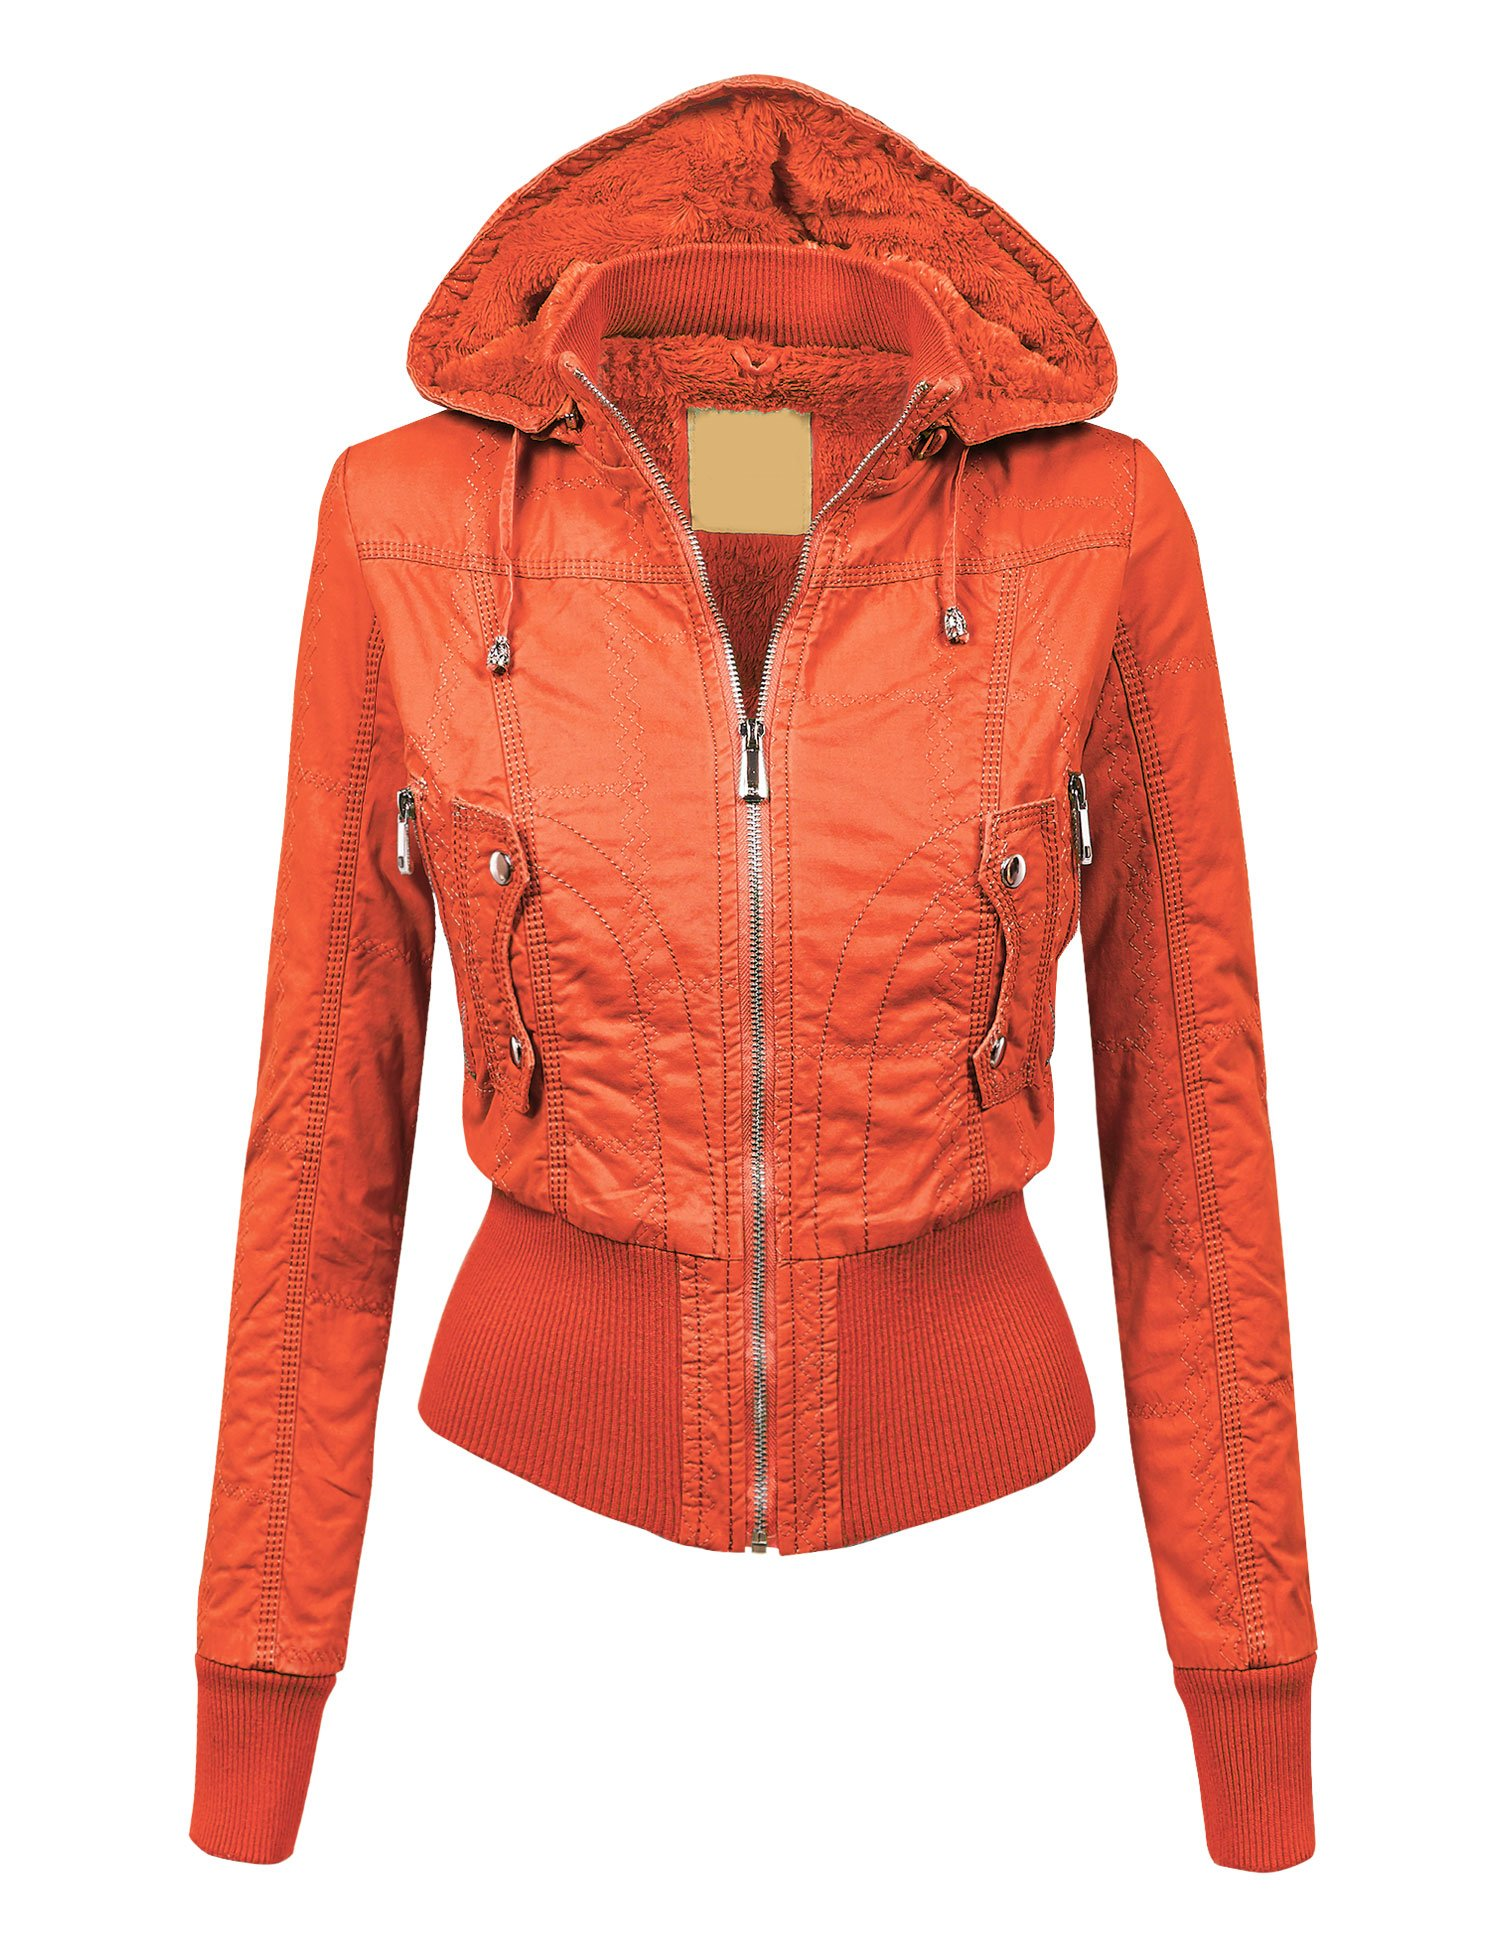 WJC1004 Womens Casual Inner Fleece Bomber Jacket with Removable Hoodie L CORAL